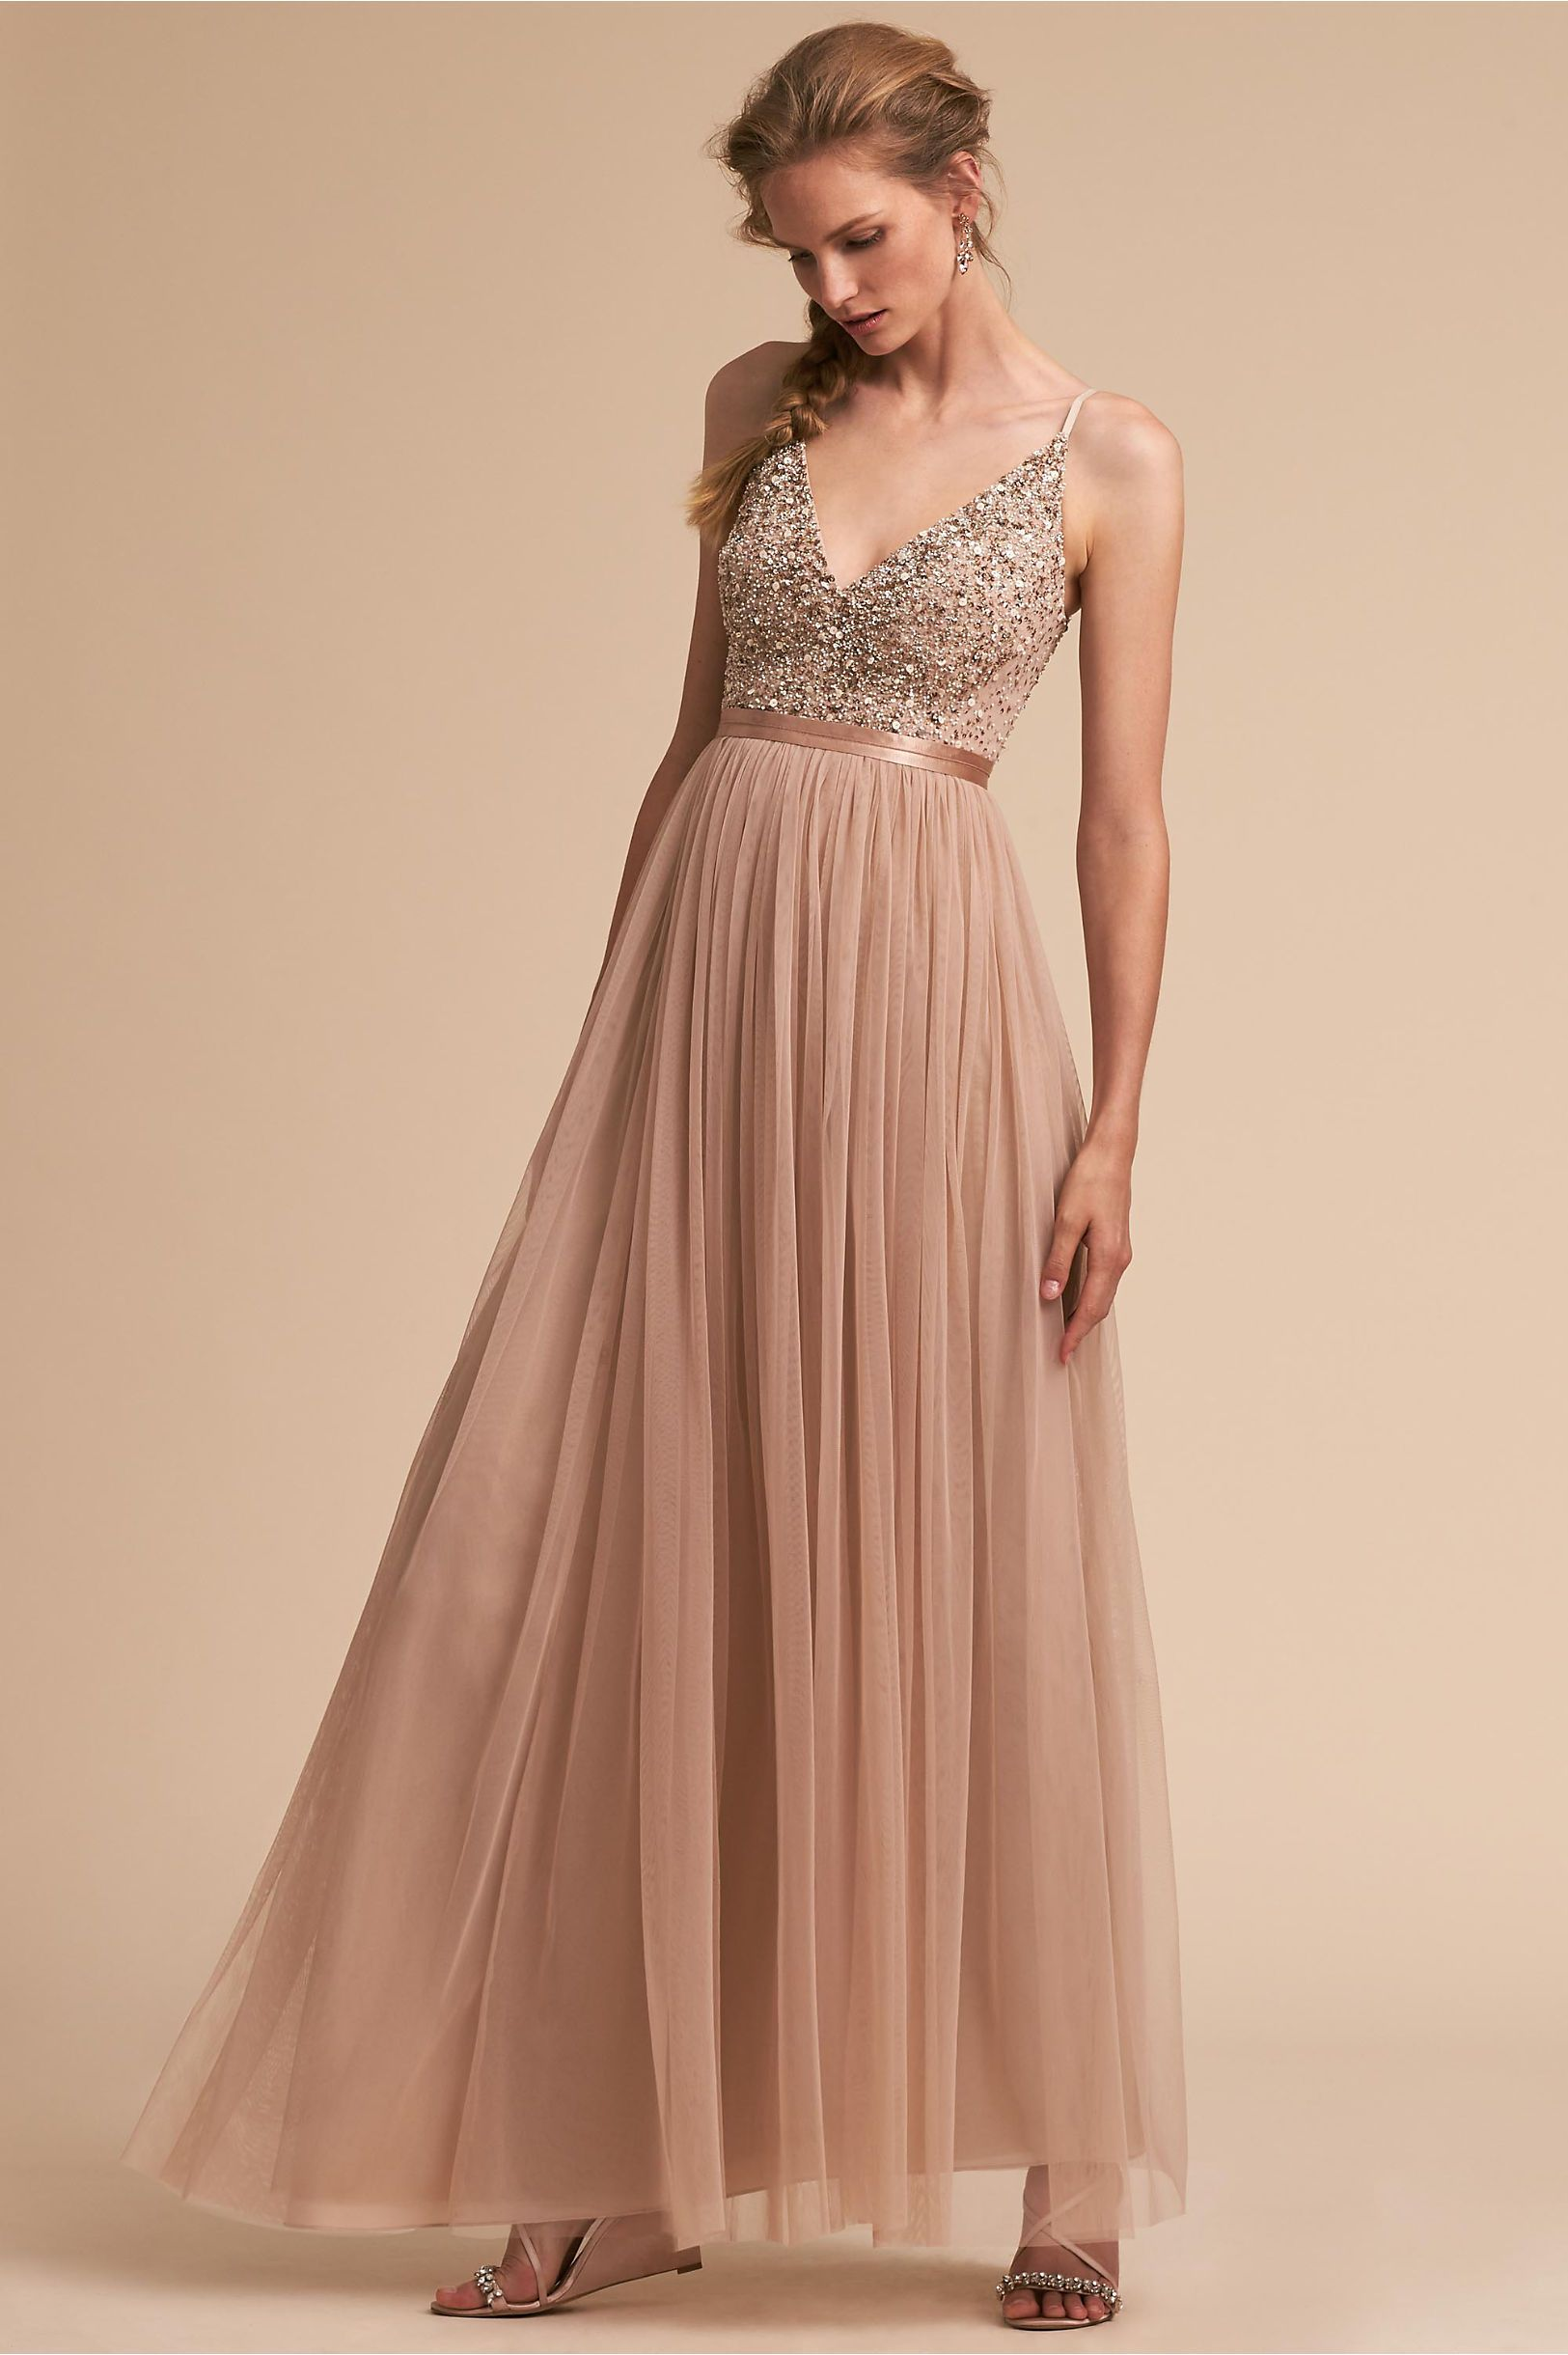 68c93e1cb4af BHLDN's Avery Dress in Blush | Products in 2019 | Bridesmaid dresses ...